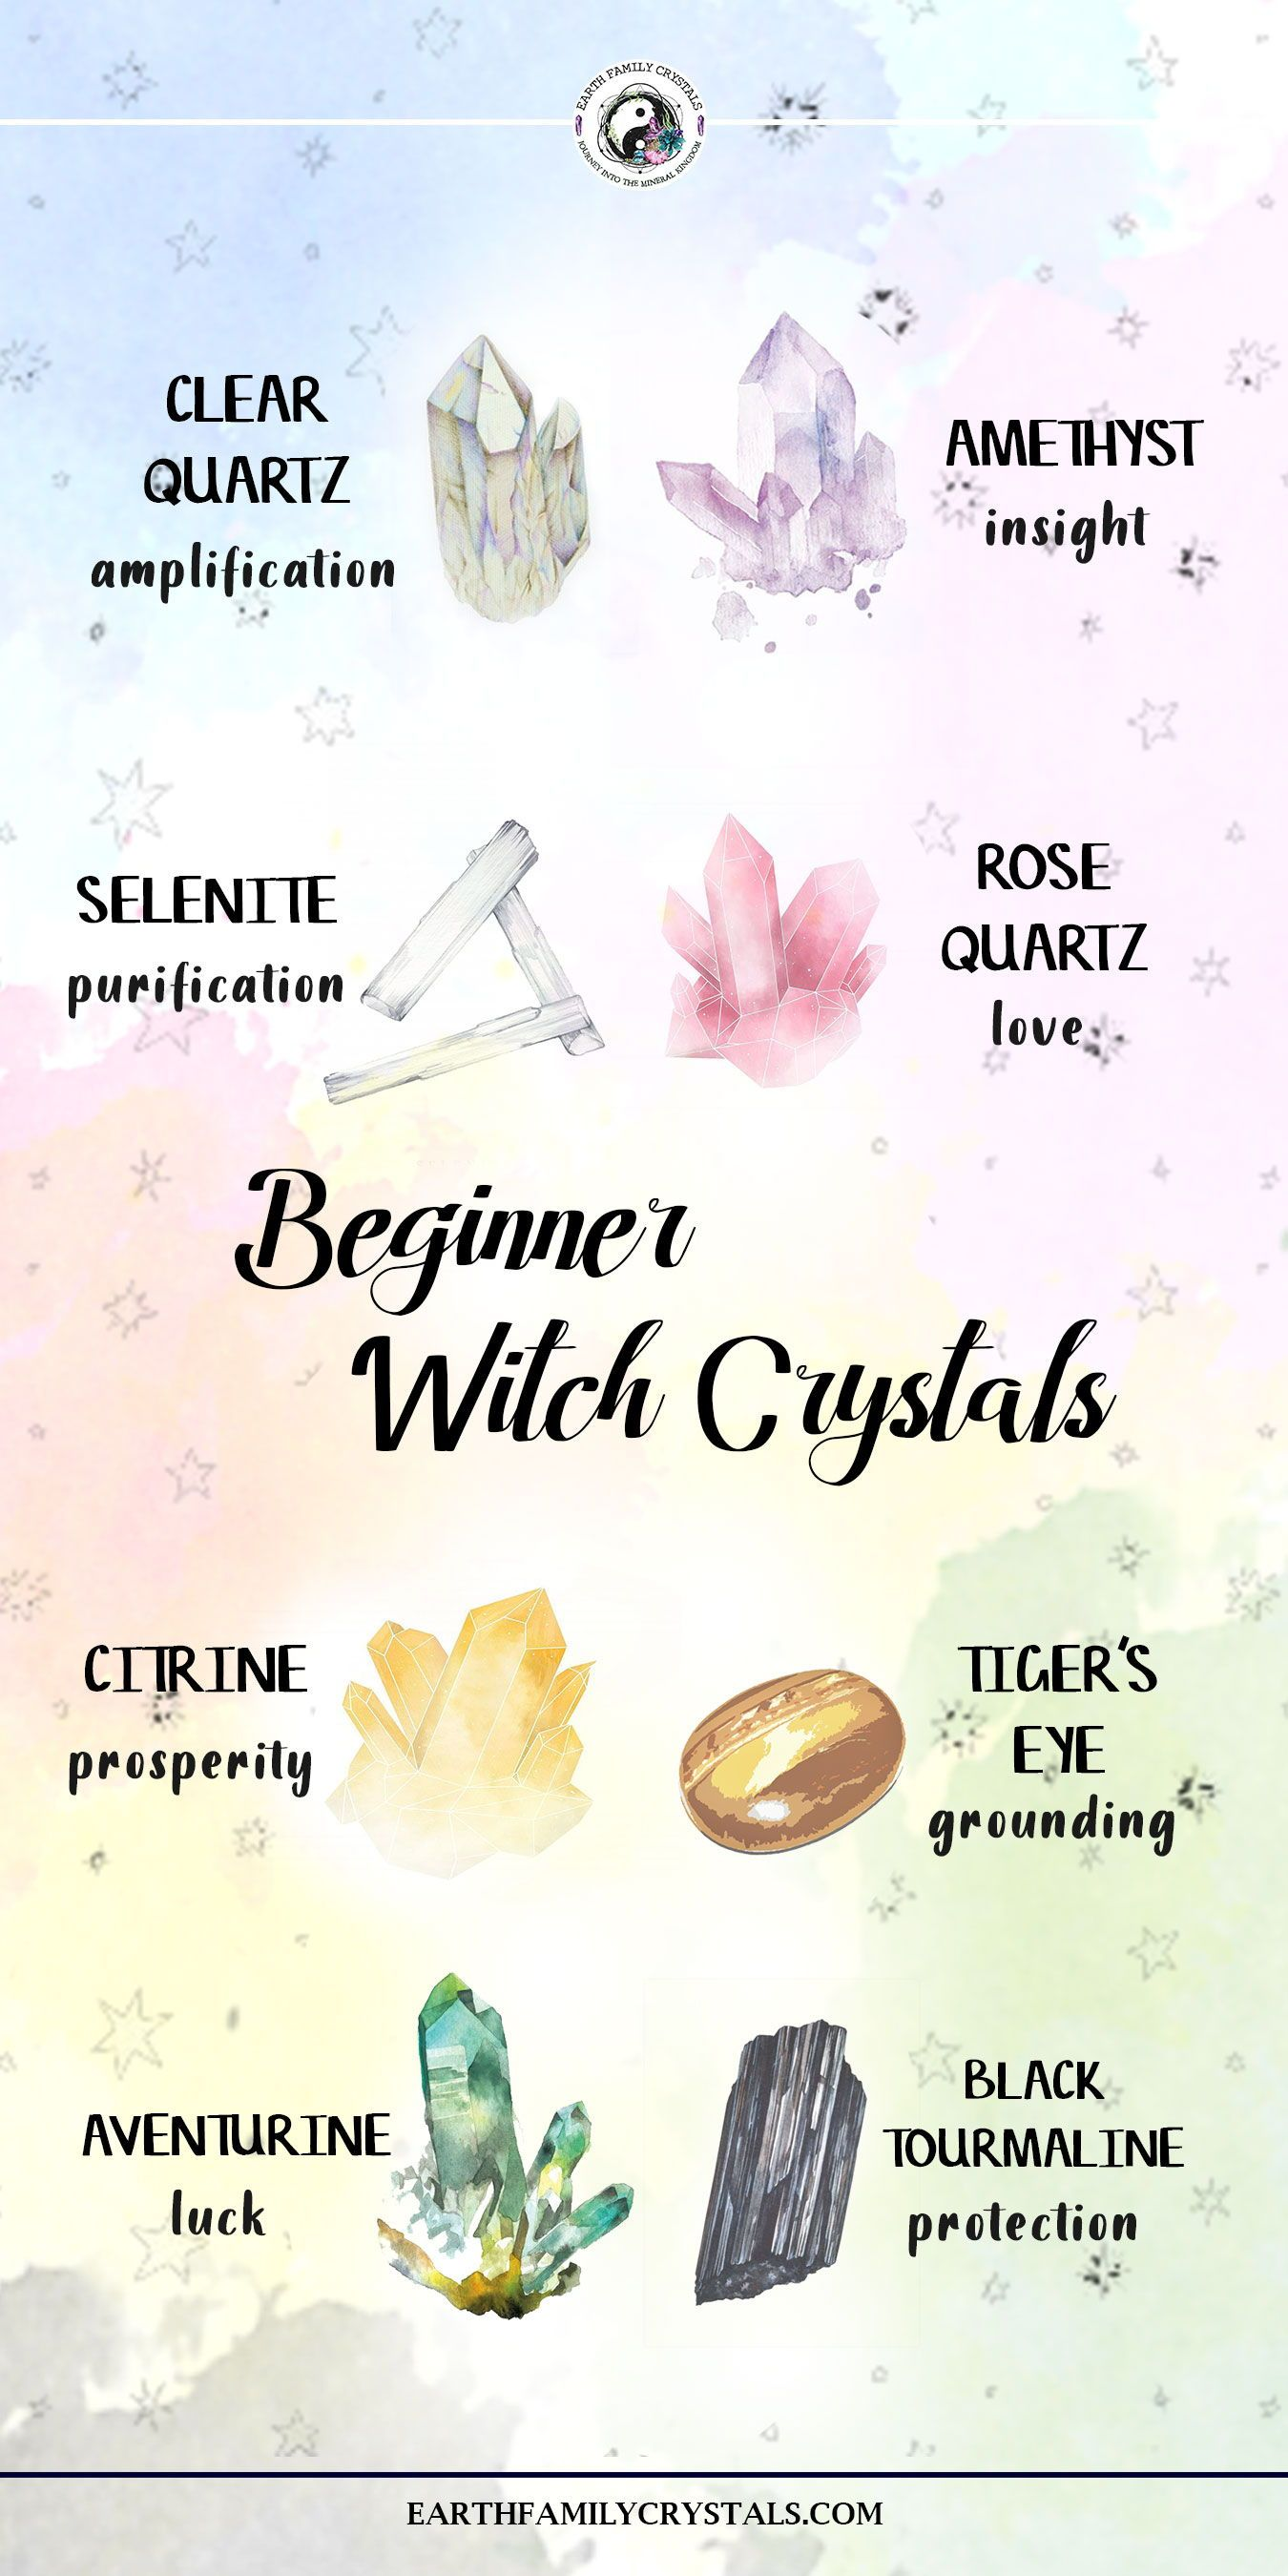 Beginner Witch Crystals Earth Family Crystals In 2020 Wicca Crystals Healing Gemstones Crystals Witchcraft For Beginners